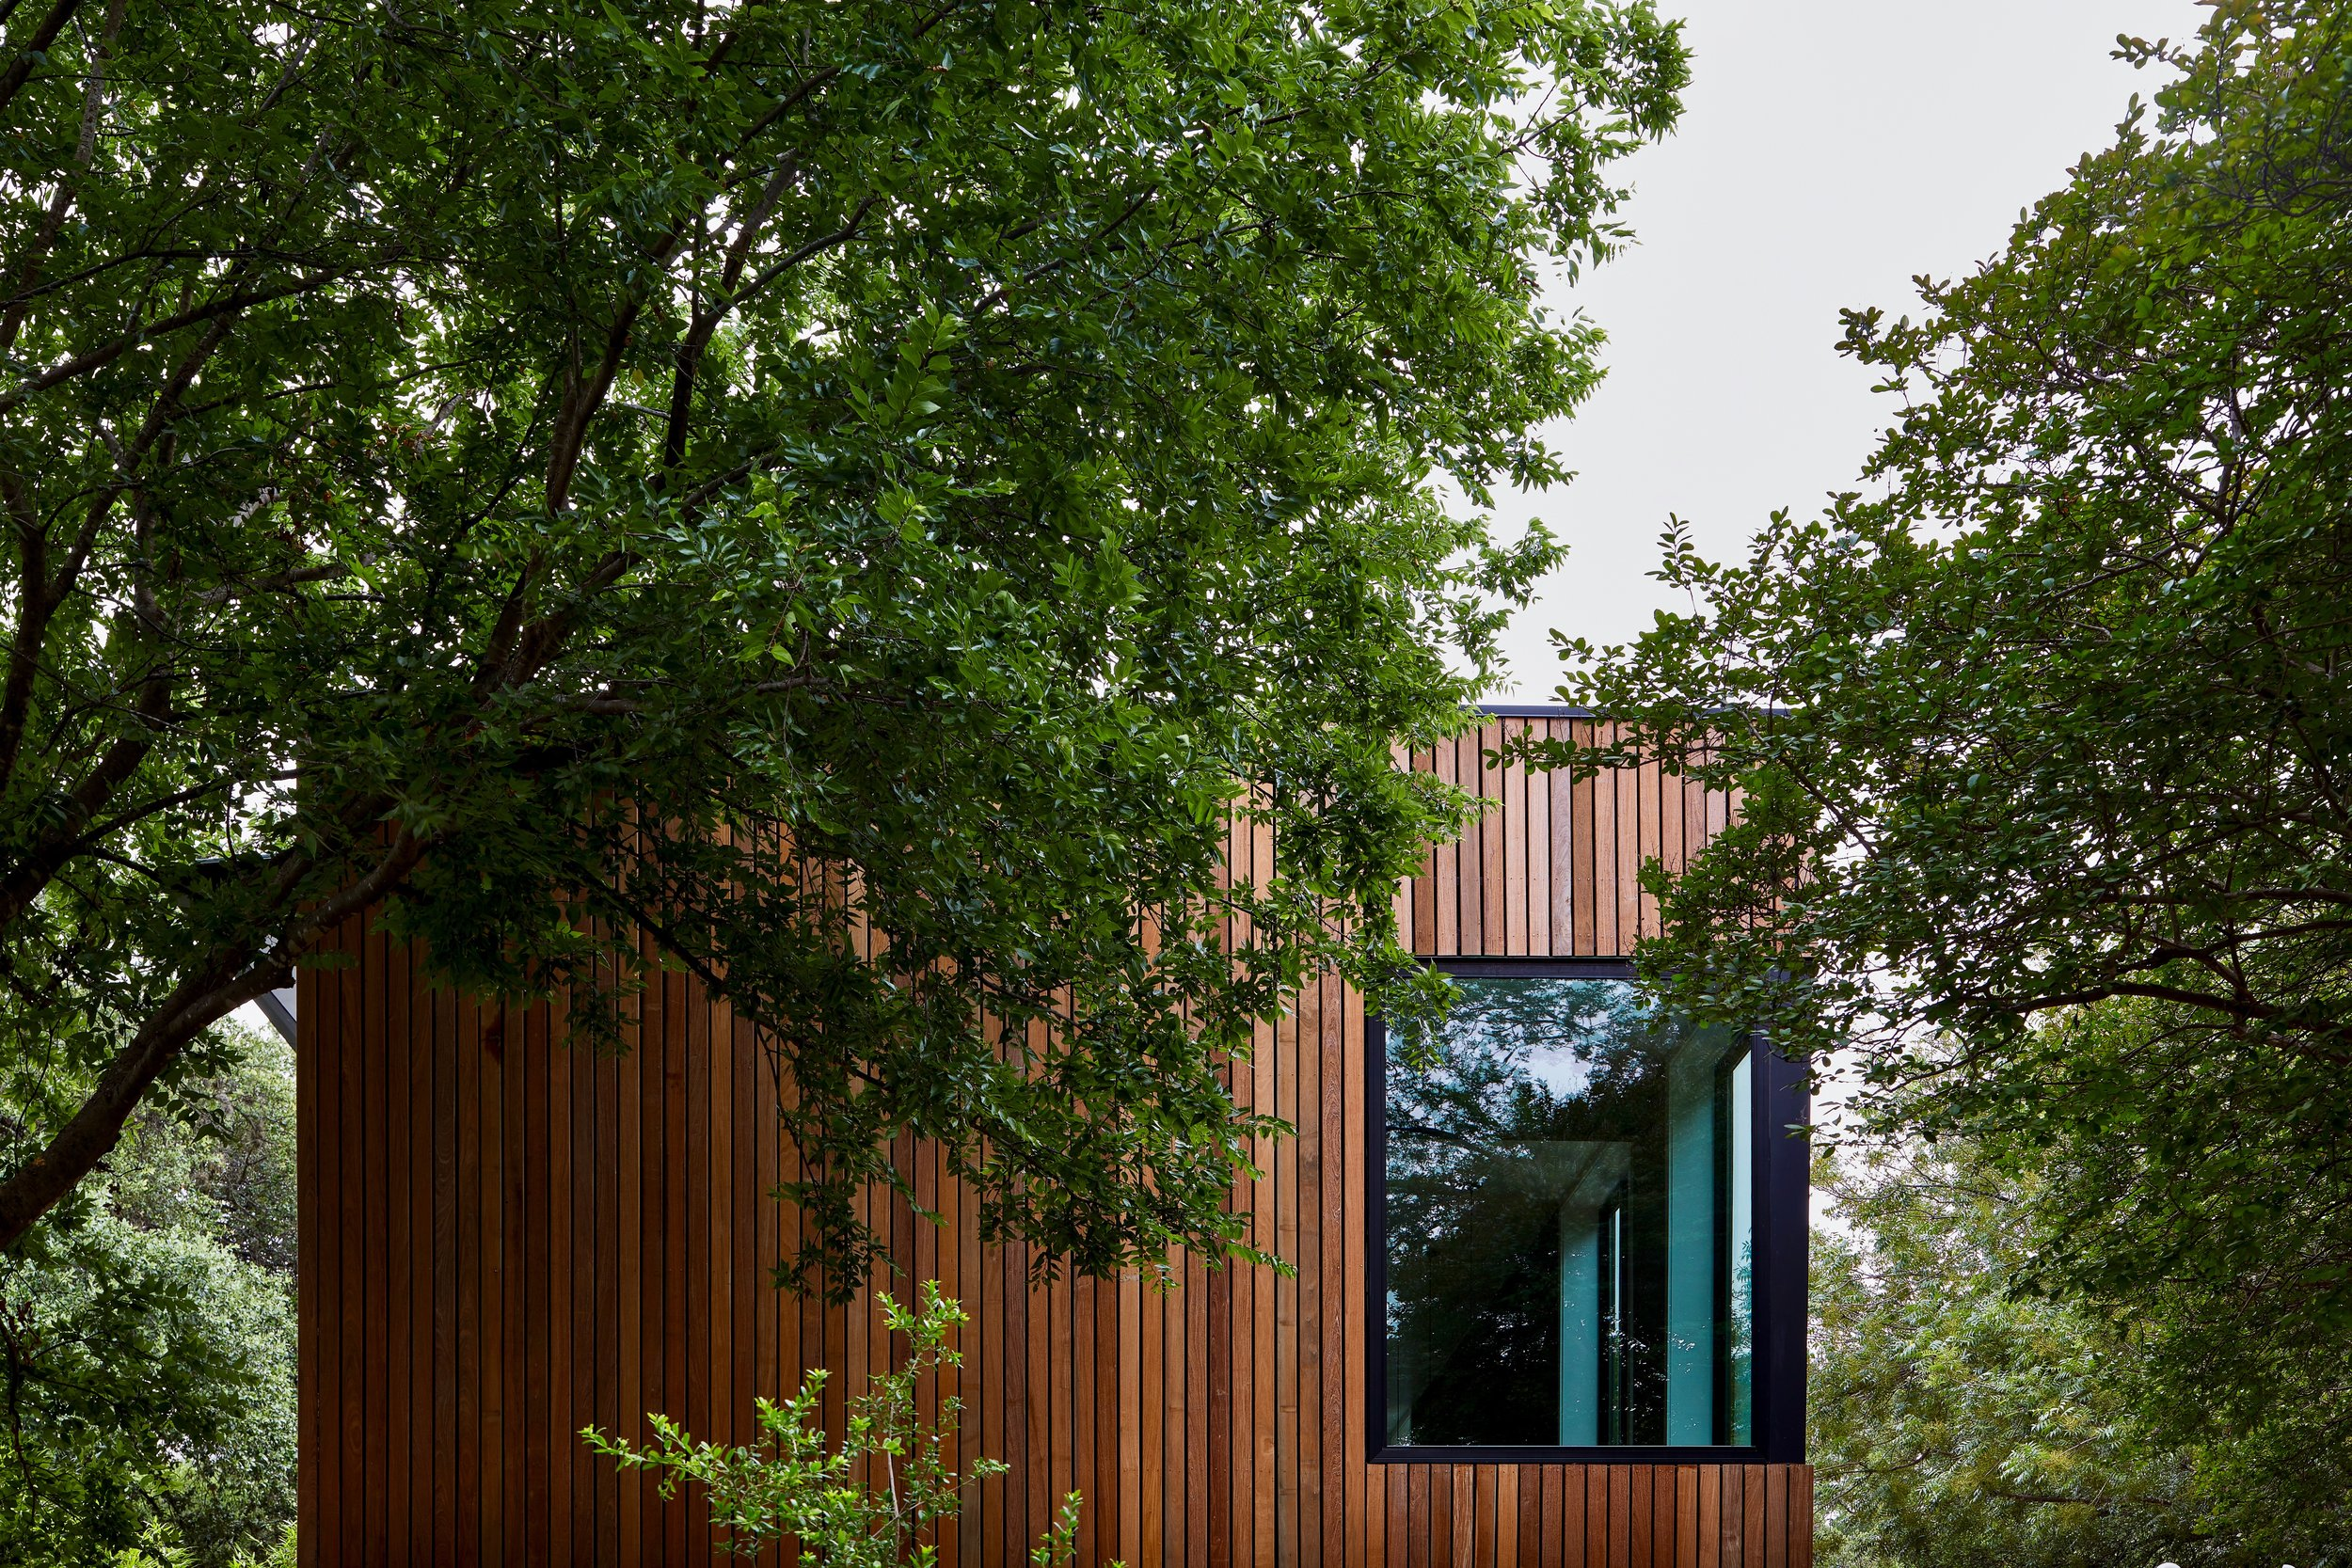 JESS_Furmansky_EXT_Rear Tree House.jpg